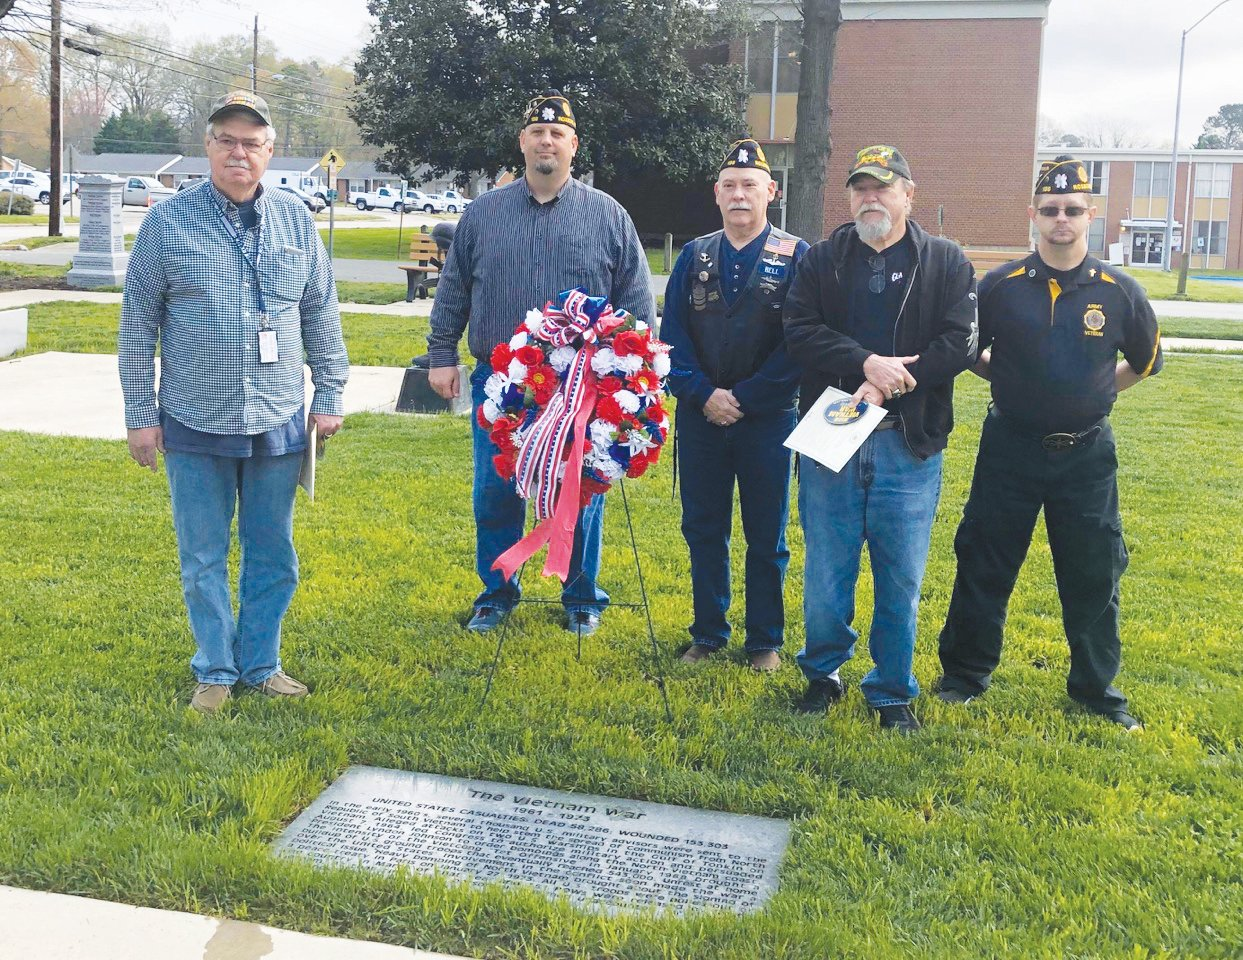 Attendees at the Vietnam War Veterans Day ceremony are, L-R, Richard Vining, Tim Carter, David Bell and Chris Talley.